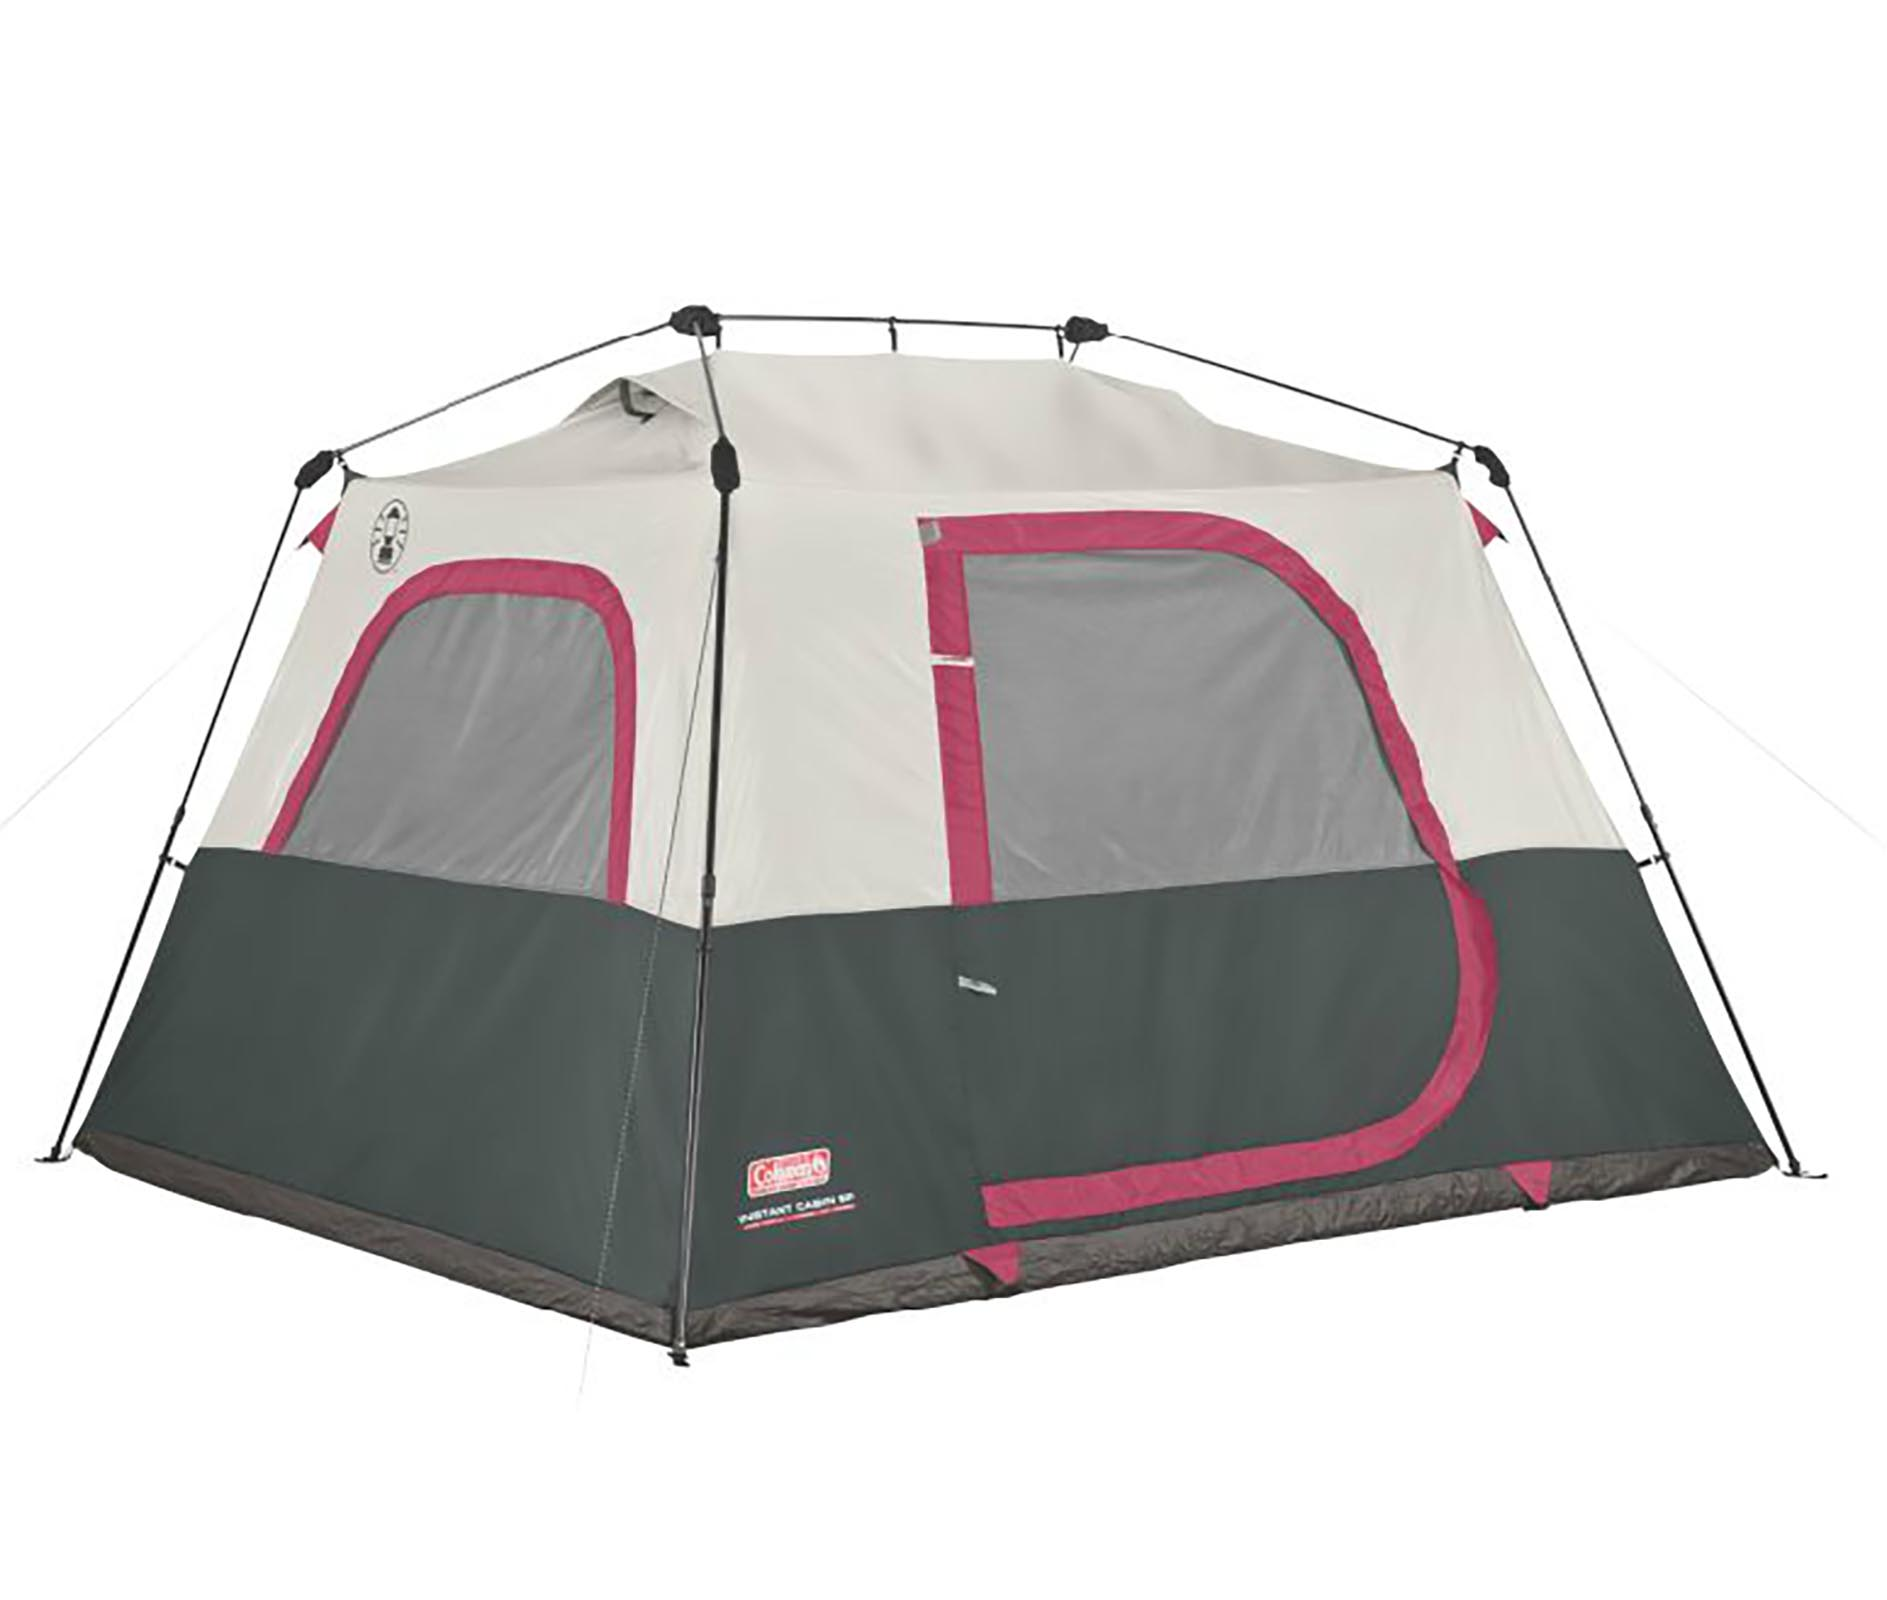 Coleman 6-Person Family Waterproof C&ing Instant Cabin Tent 10 x 9 x 6 Feet  sc 1 st  Walmart & Coleman 6-Person Family Waterproof Camping Instant Cabin Tent 10 x ...